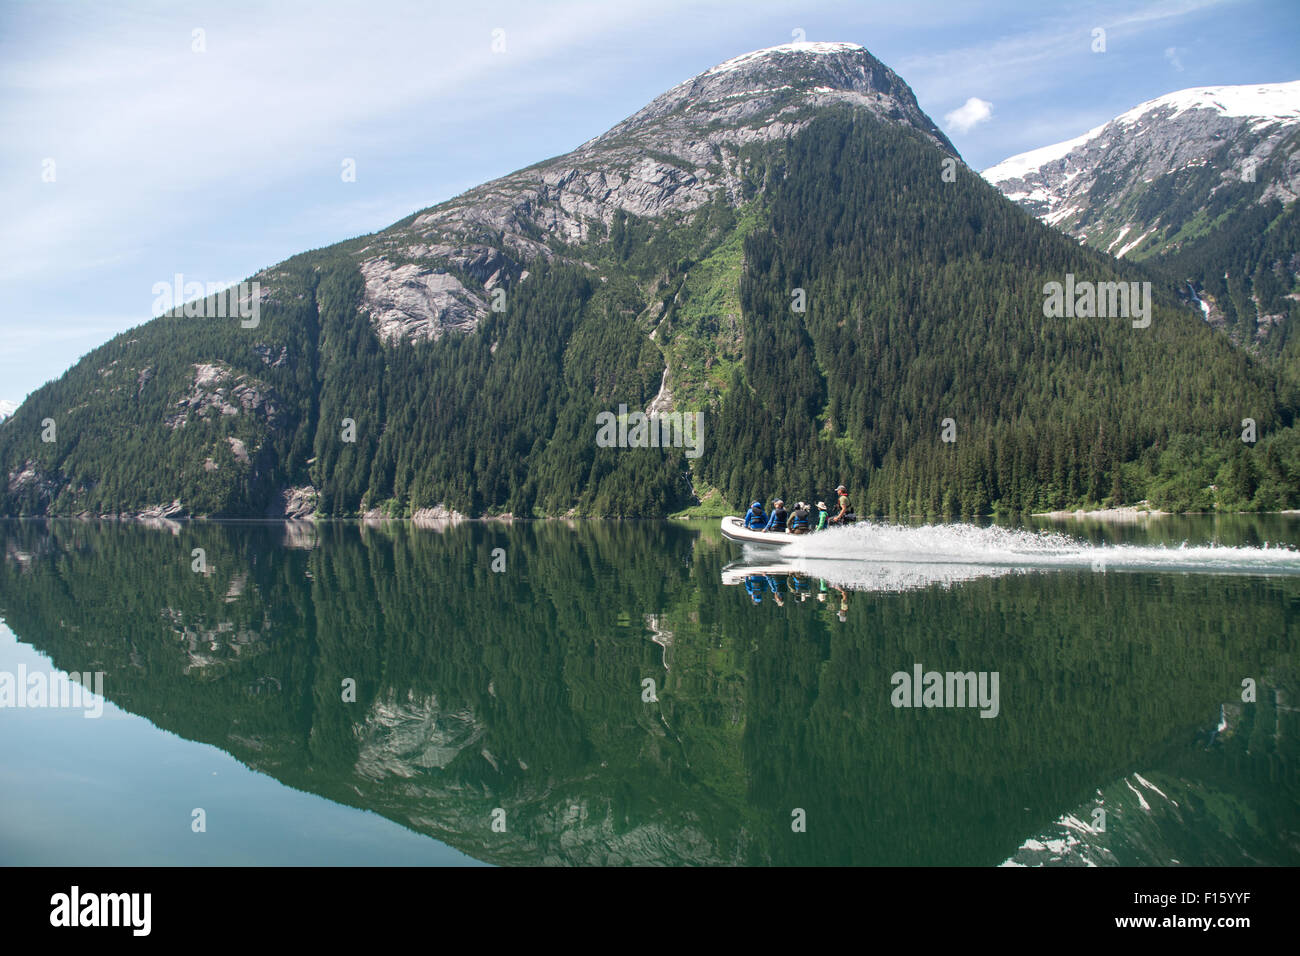 A wilderness guide and tourists travel up a remote lake by zodiac in the Great Bear Rainforest of British Columbia, - Stock Image